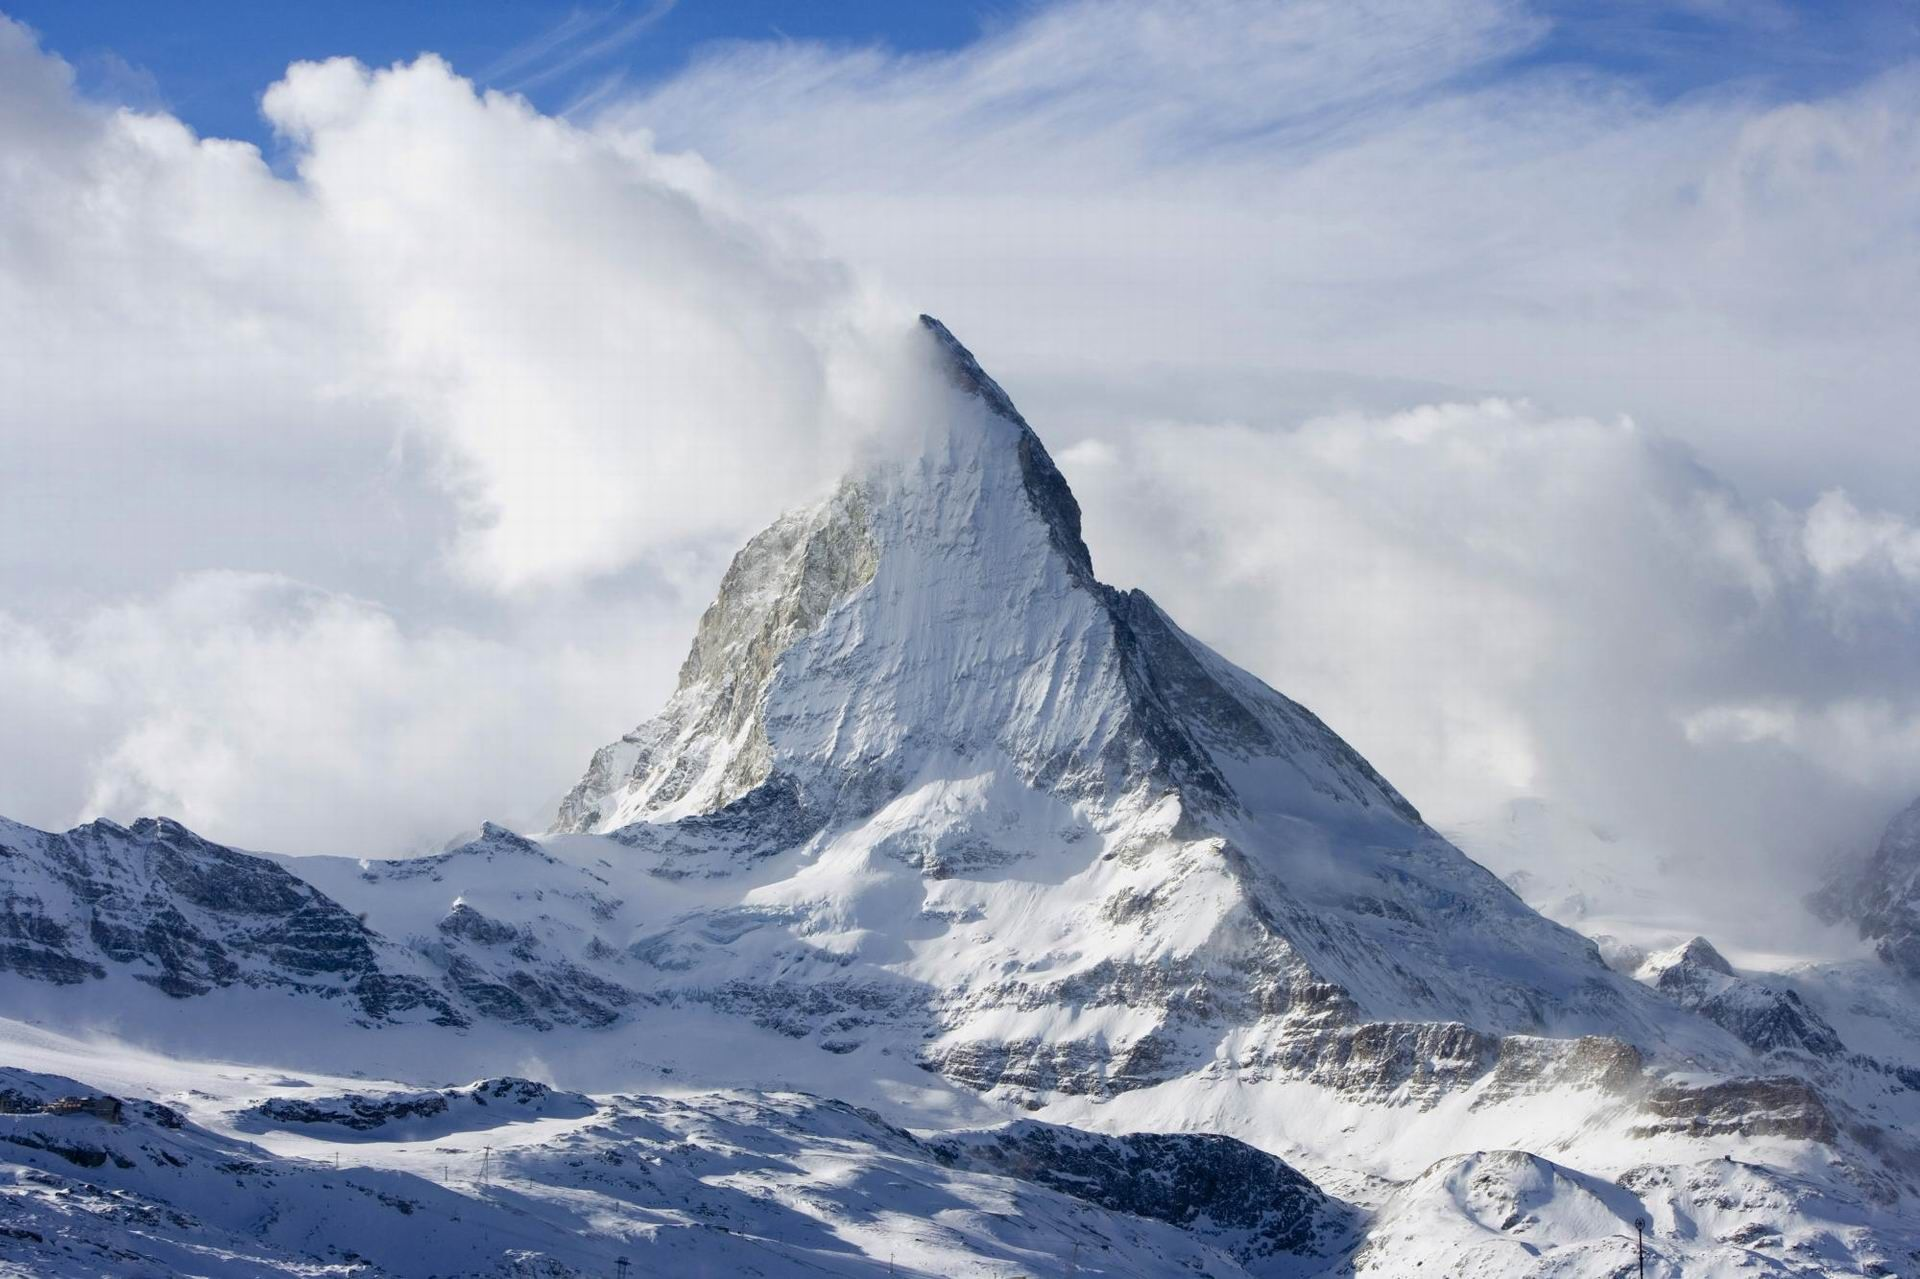 matterhorn, zermatt, swiss alps, switzerland - hd travel photos and